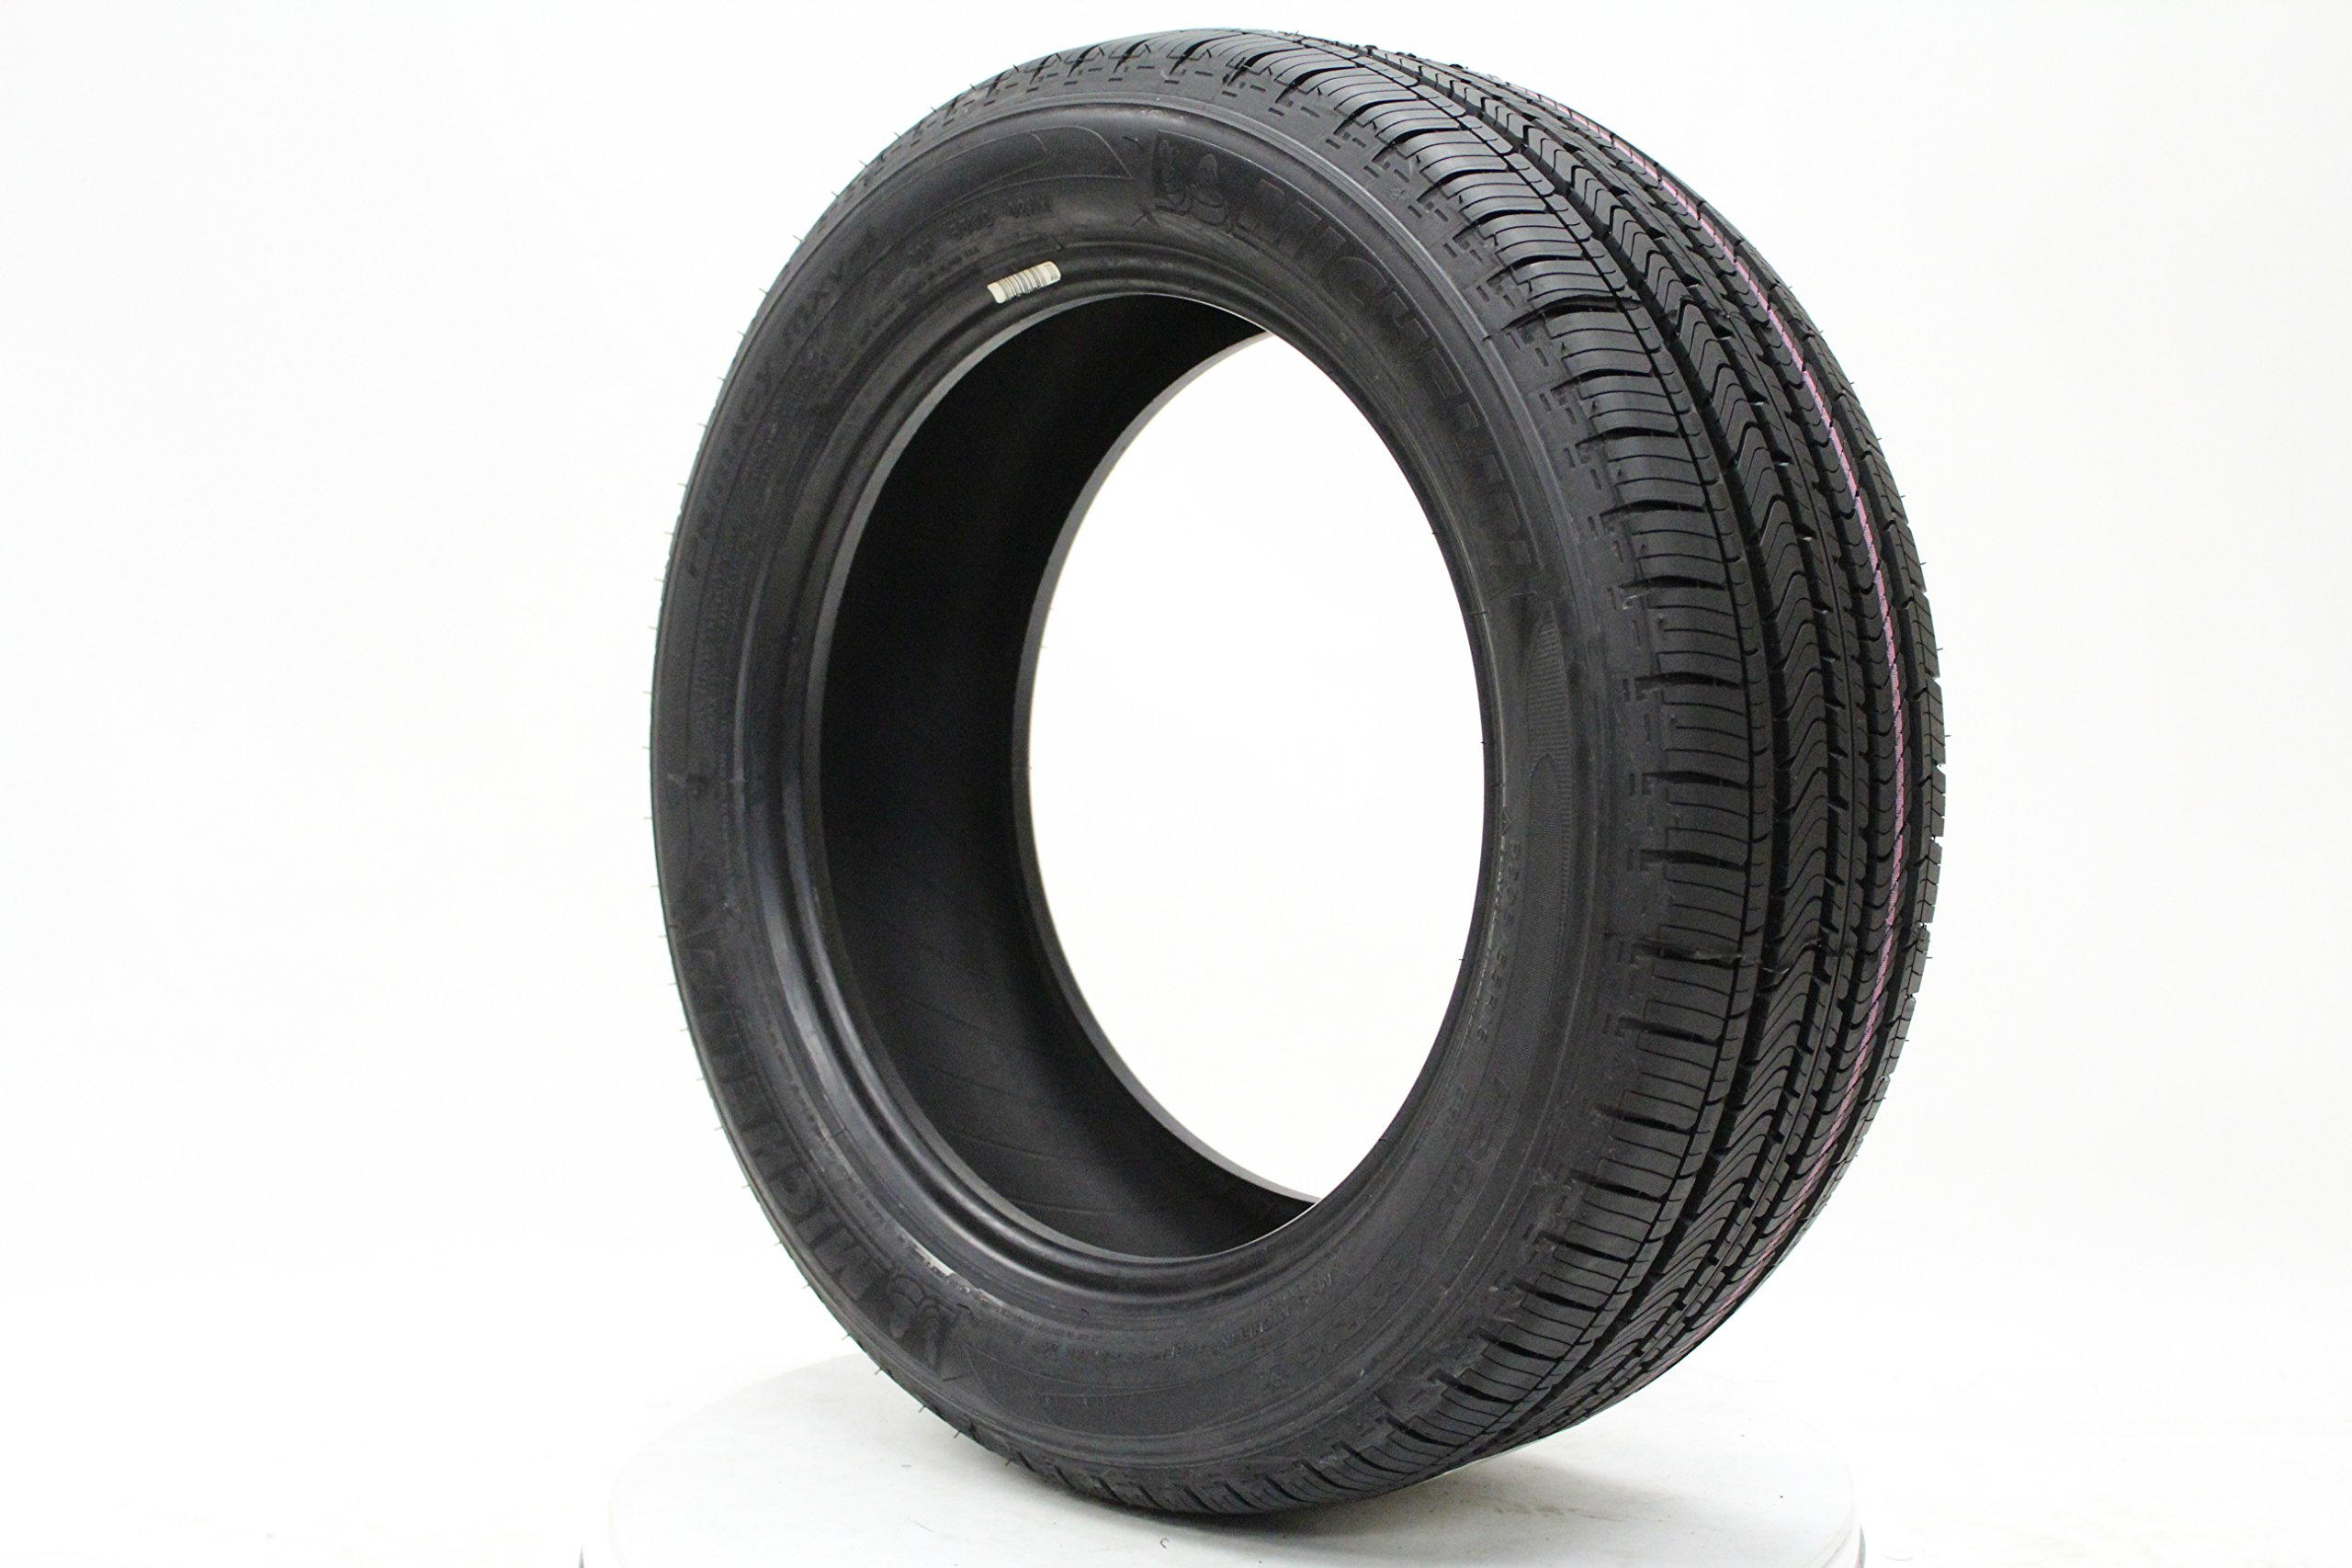 Michelin Primacy MXV4 All Season Radial Car Tire for Luxury Performance Touring, P215/55R17 93V